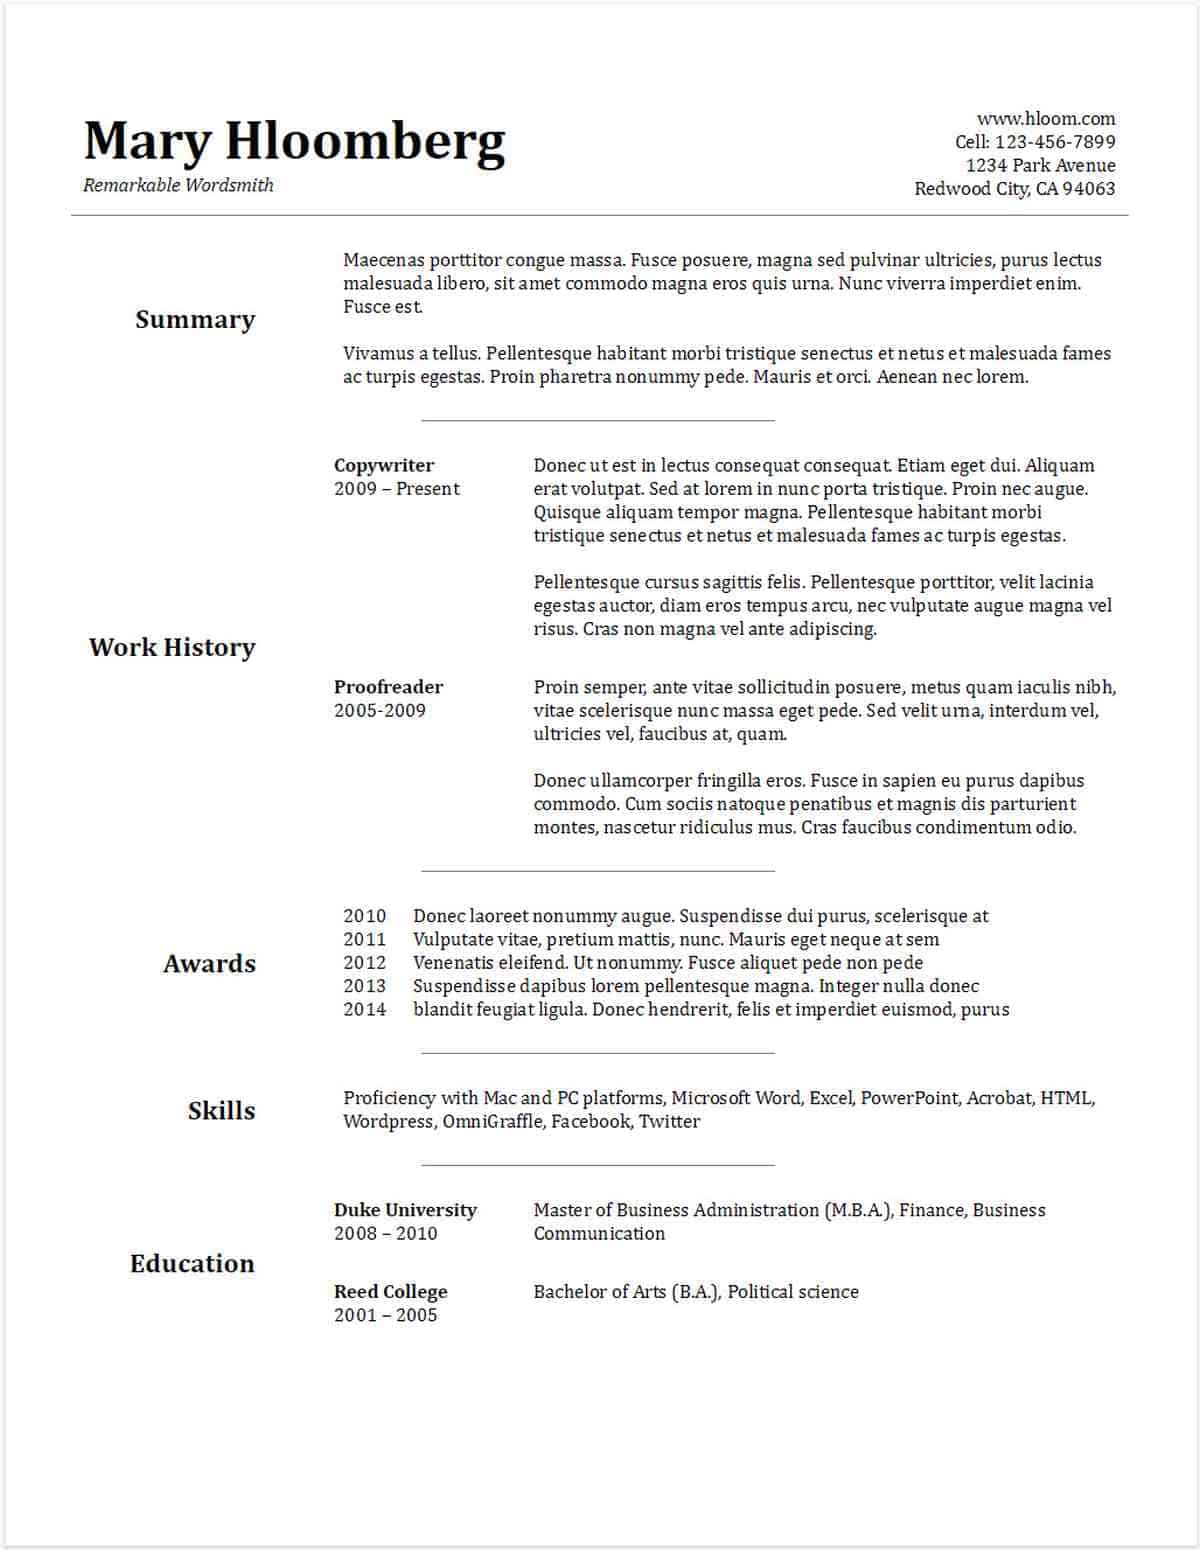 Goldfish Bowl Gdoc | Google Docs Resume Templates [Downloadable PDFs] | Google Docs resume template free | Google resume examples